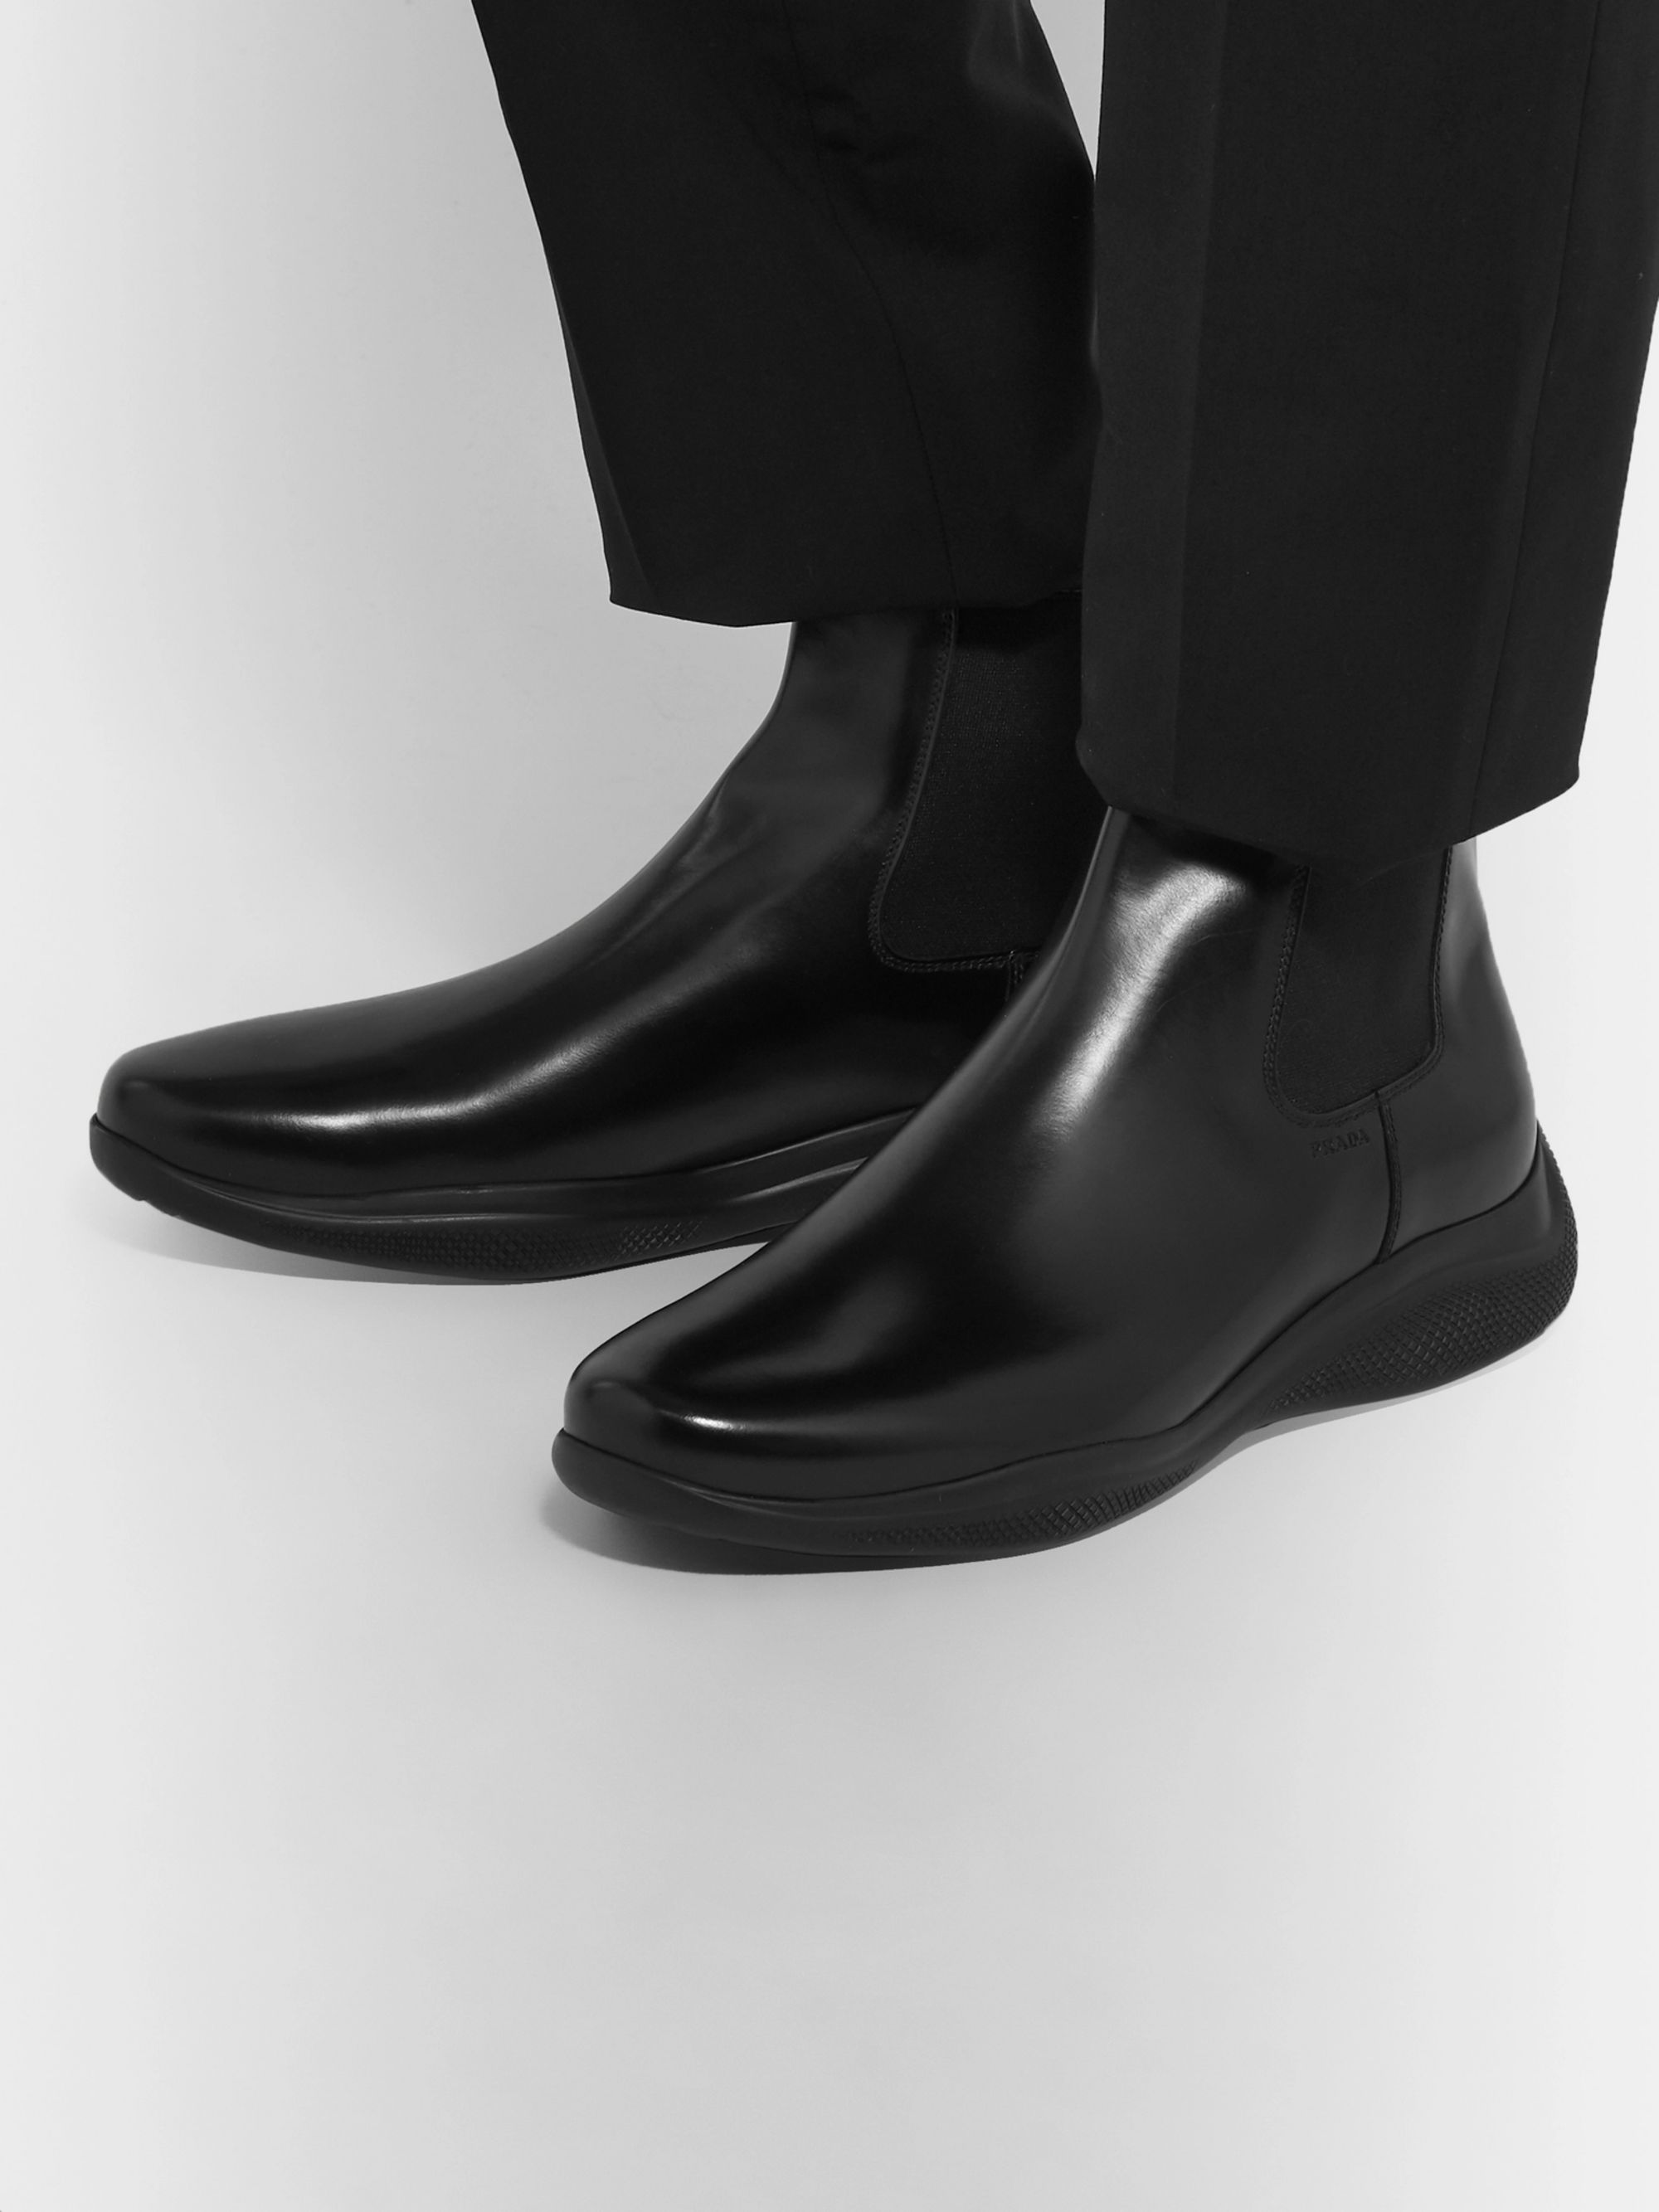 Prada Spazzolato Leather Chelsea Boots